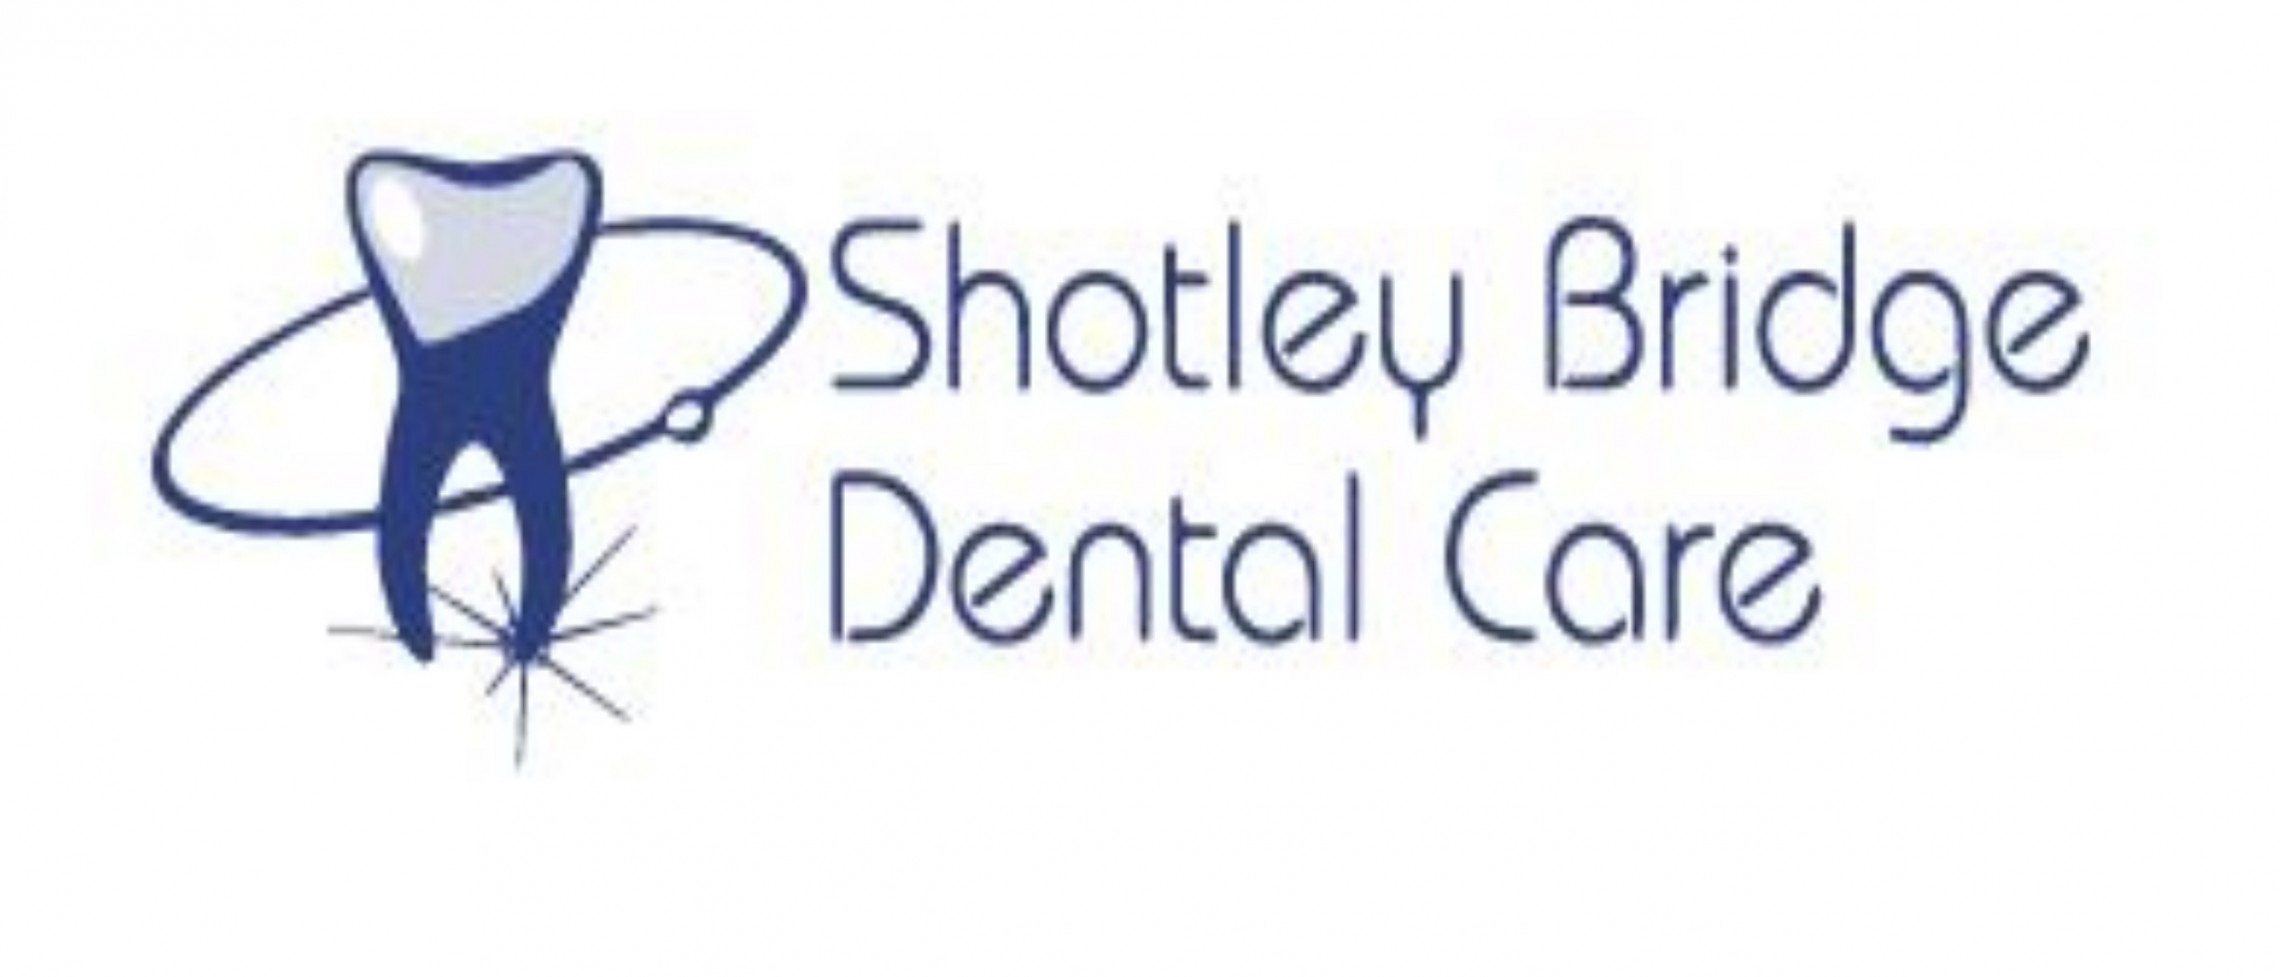 Shotley Bridge Dental Care